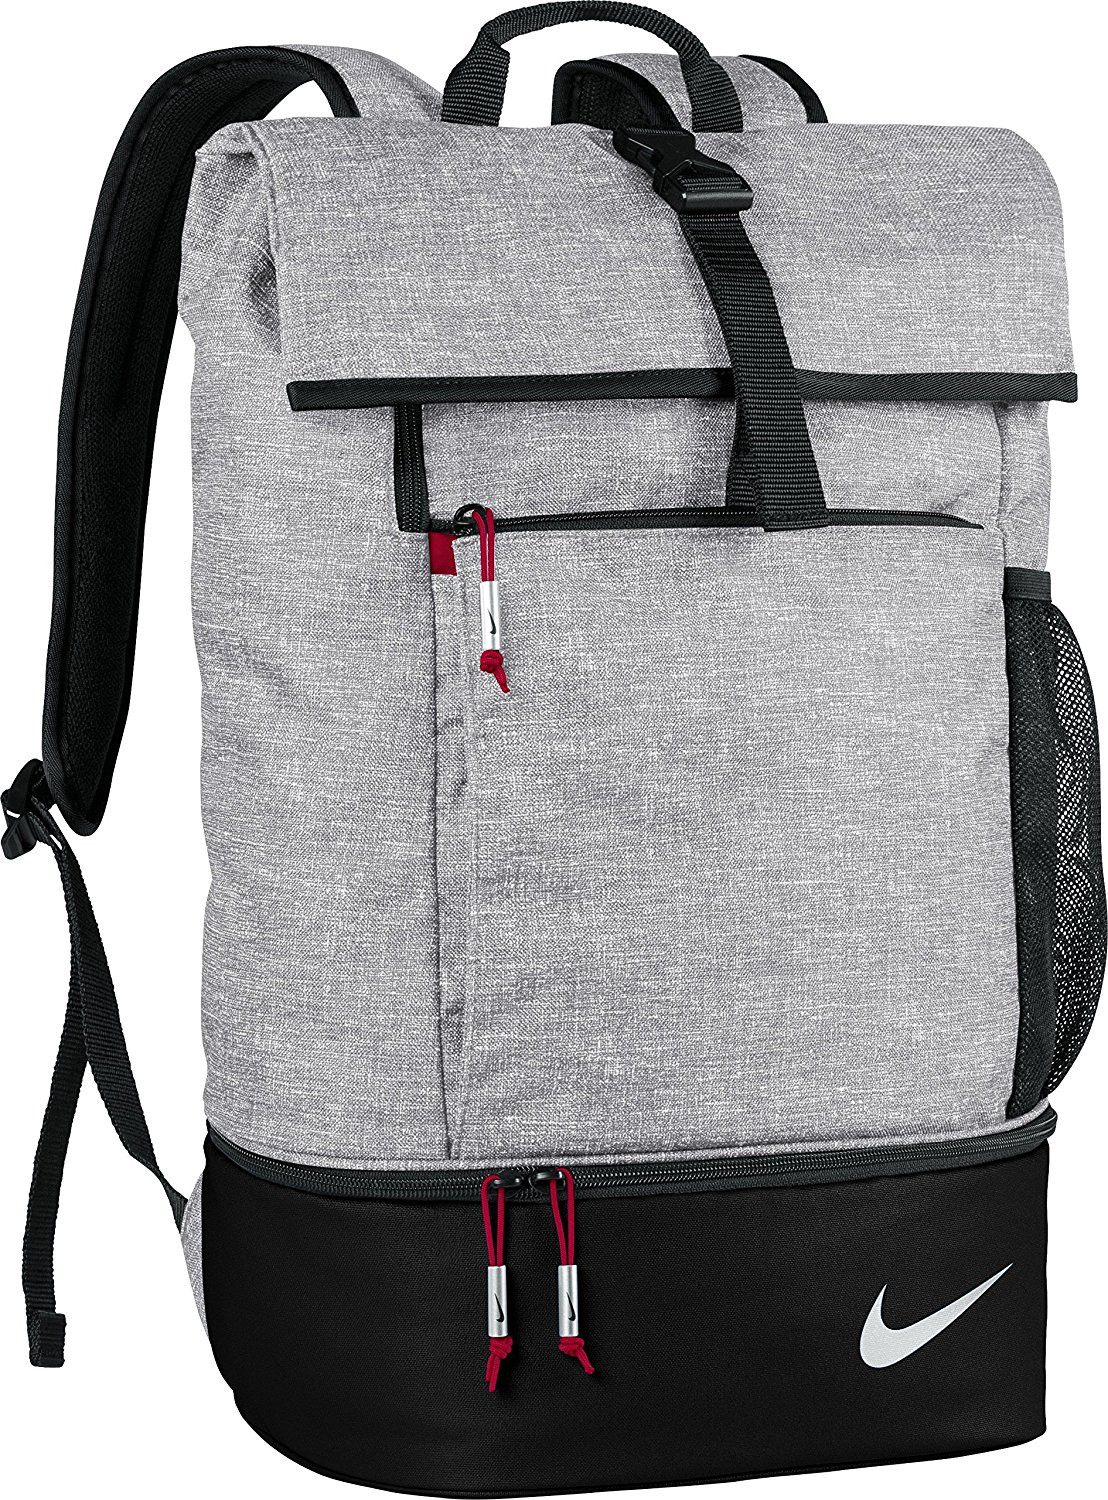 c0c2f246a549 Nike Travel Bags Amazon